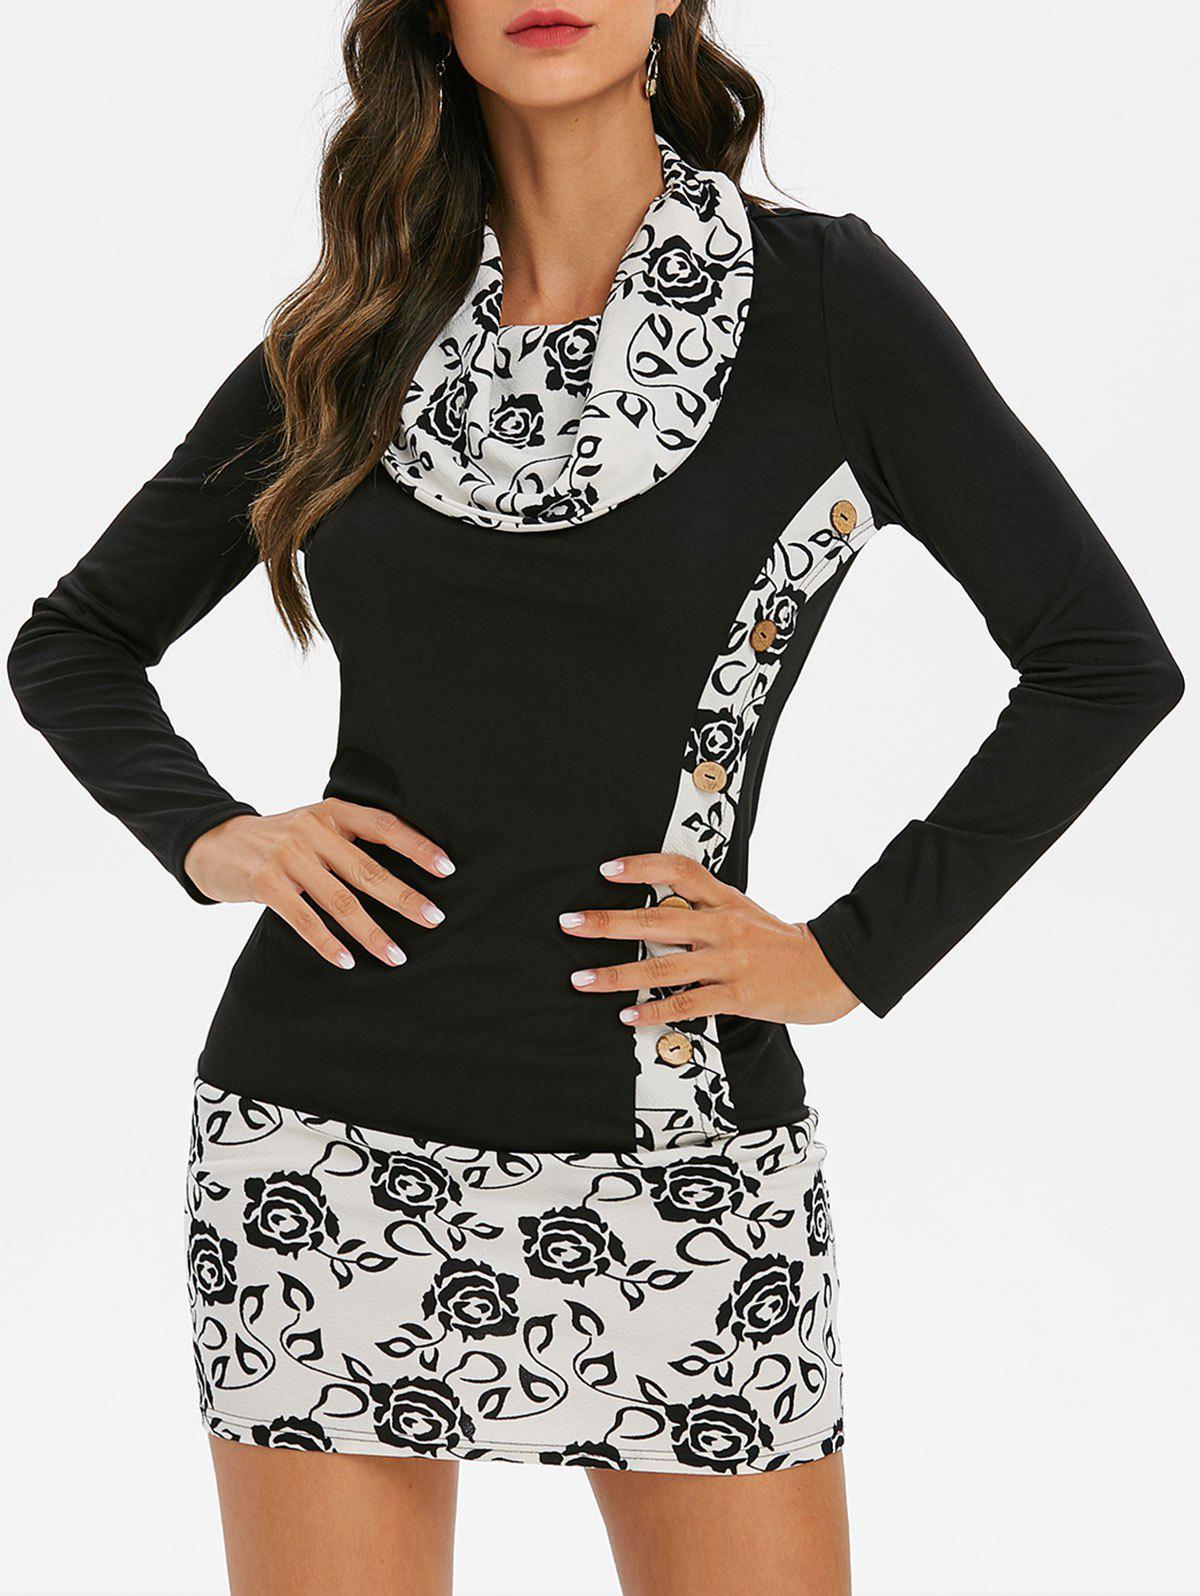 New Floral Button Embellished Cowl Neck T-shirt